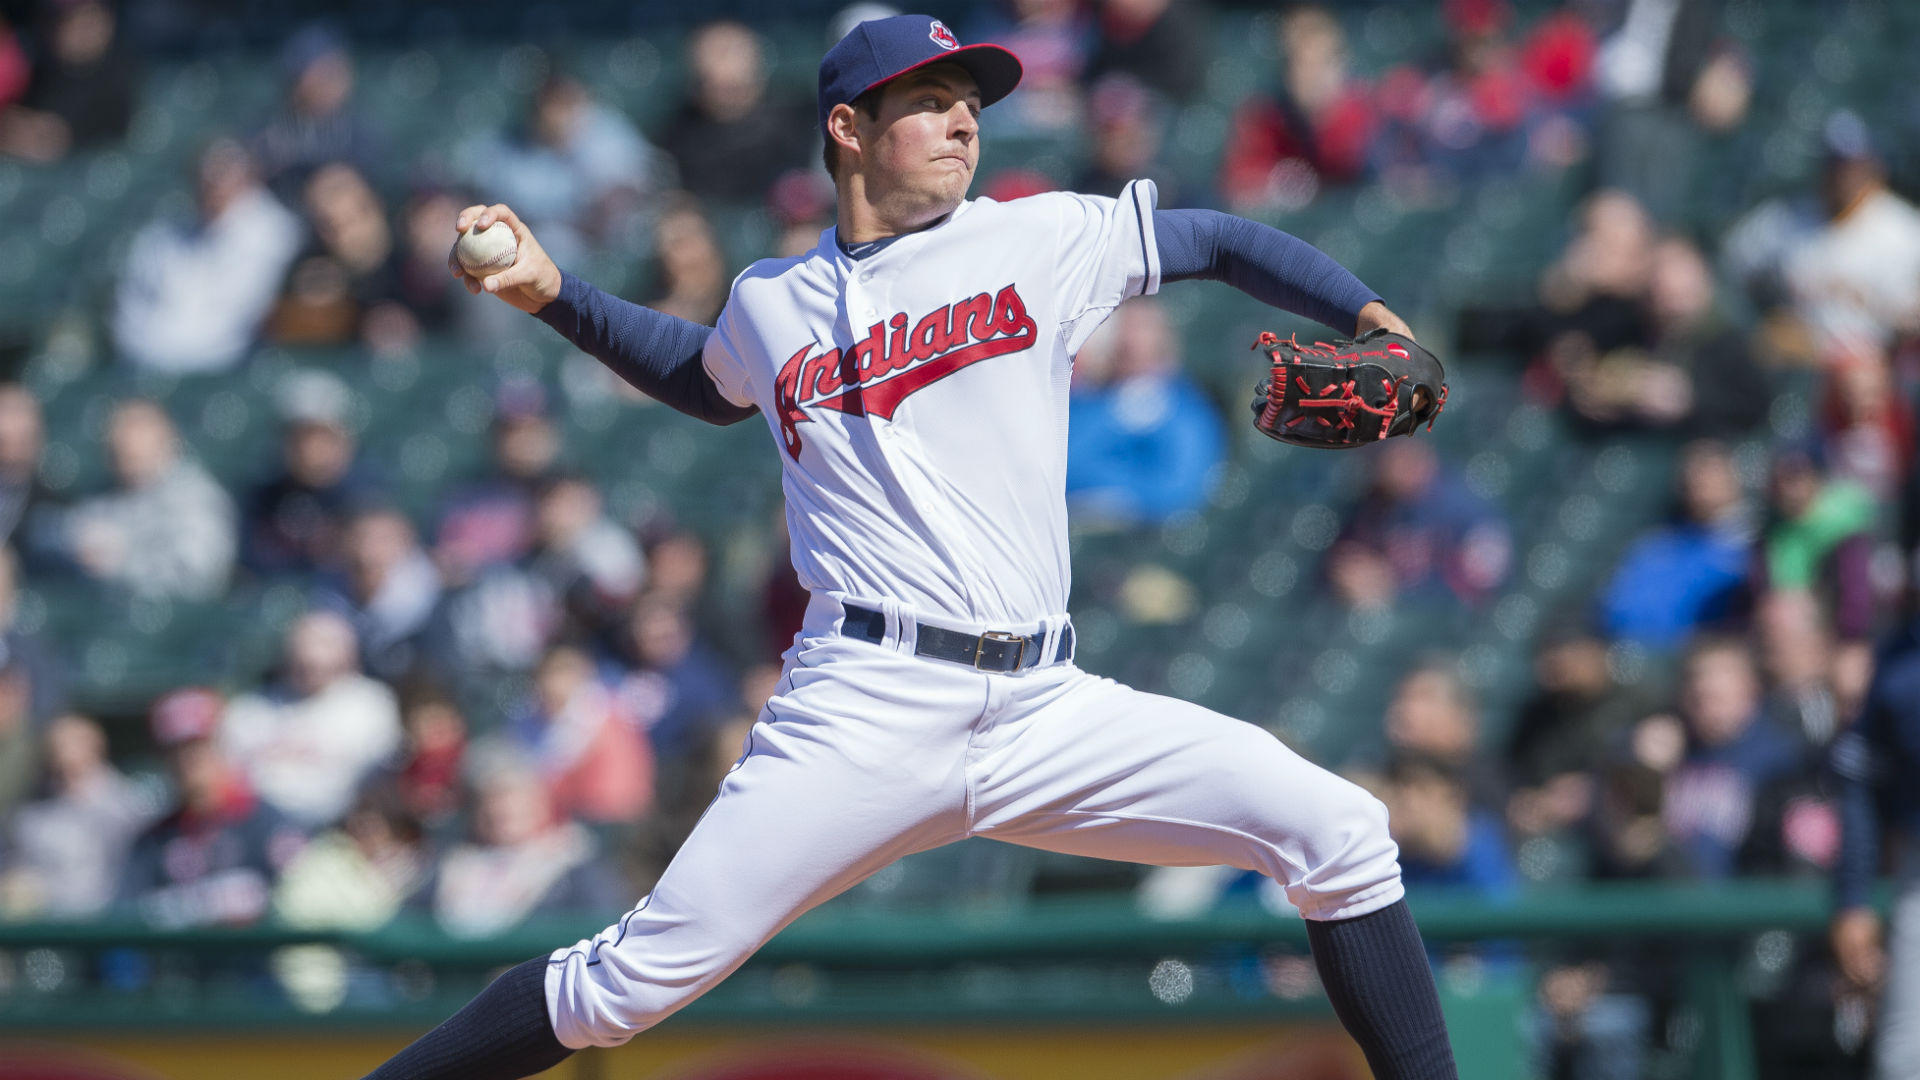 Trevor-Bauer-041615-GETTY-FTR